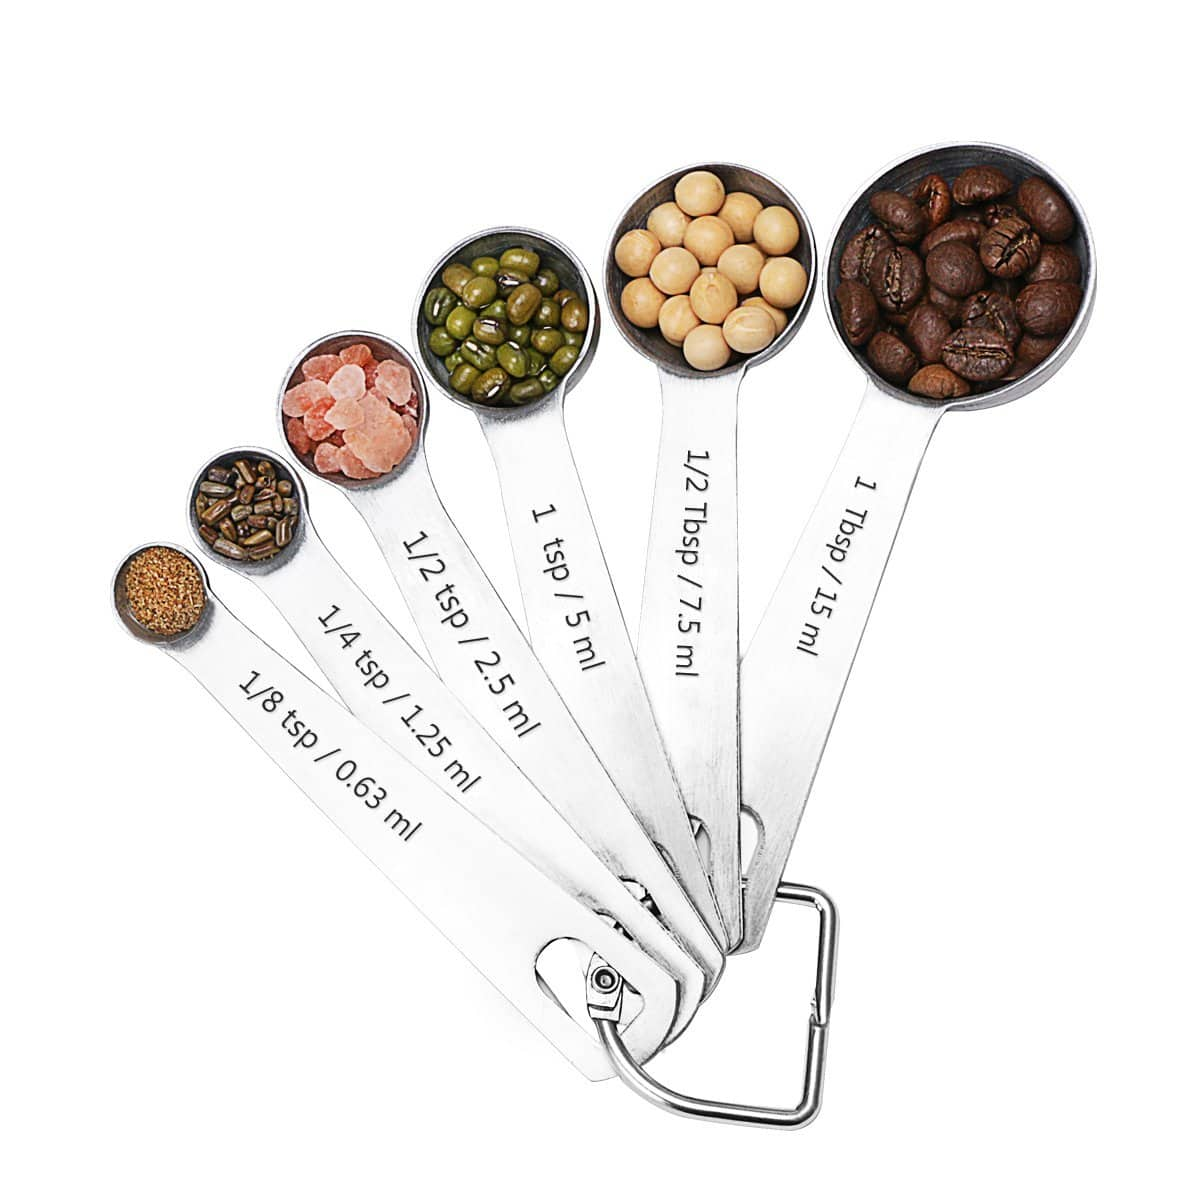 SveBake Stainless Steel Measuring Spoons for Dry & Liquid Ingredients, Set of 6 for $5.95 + FS w/ Prime